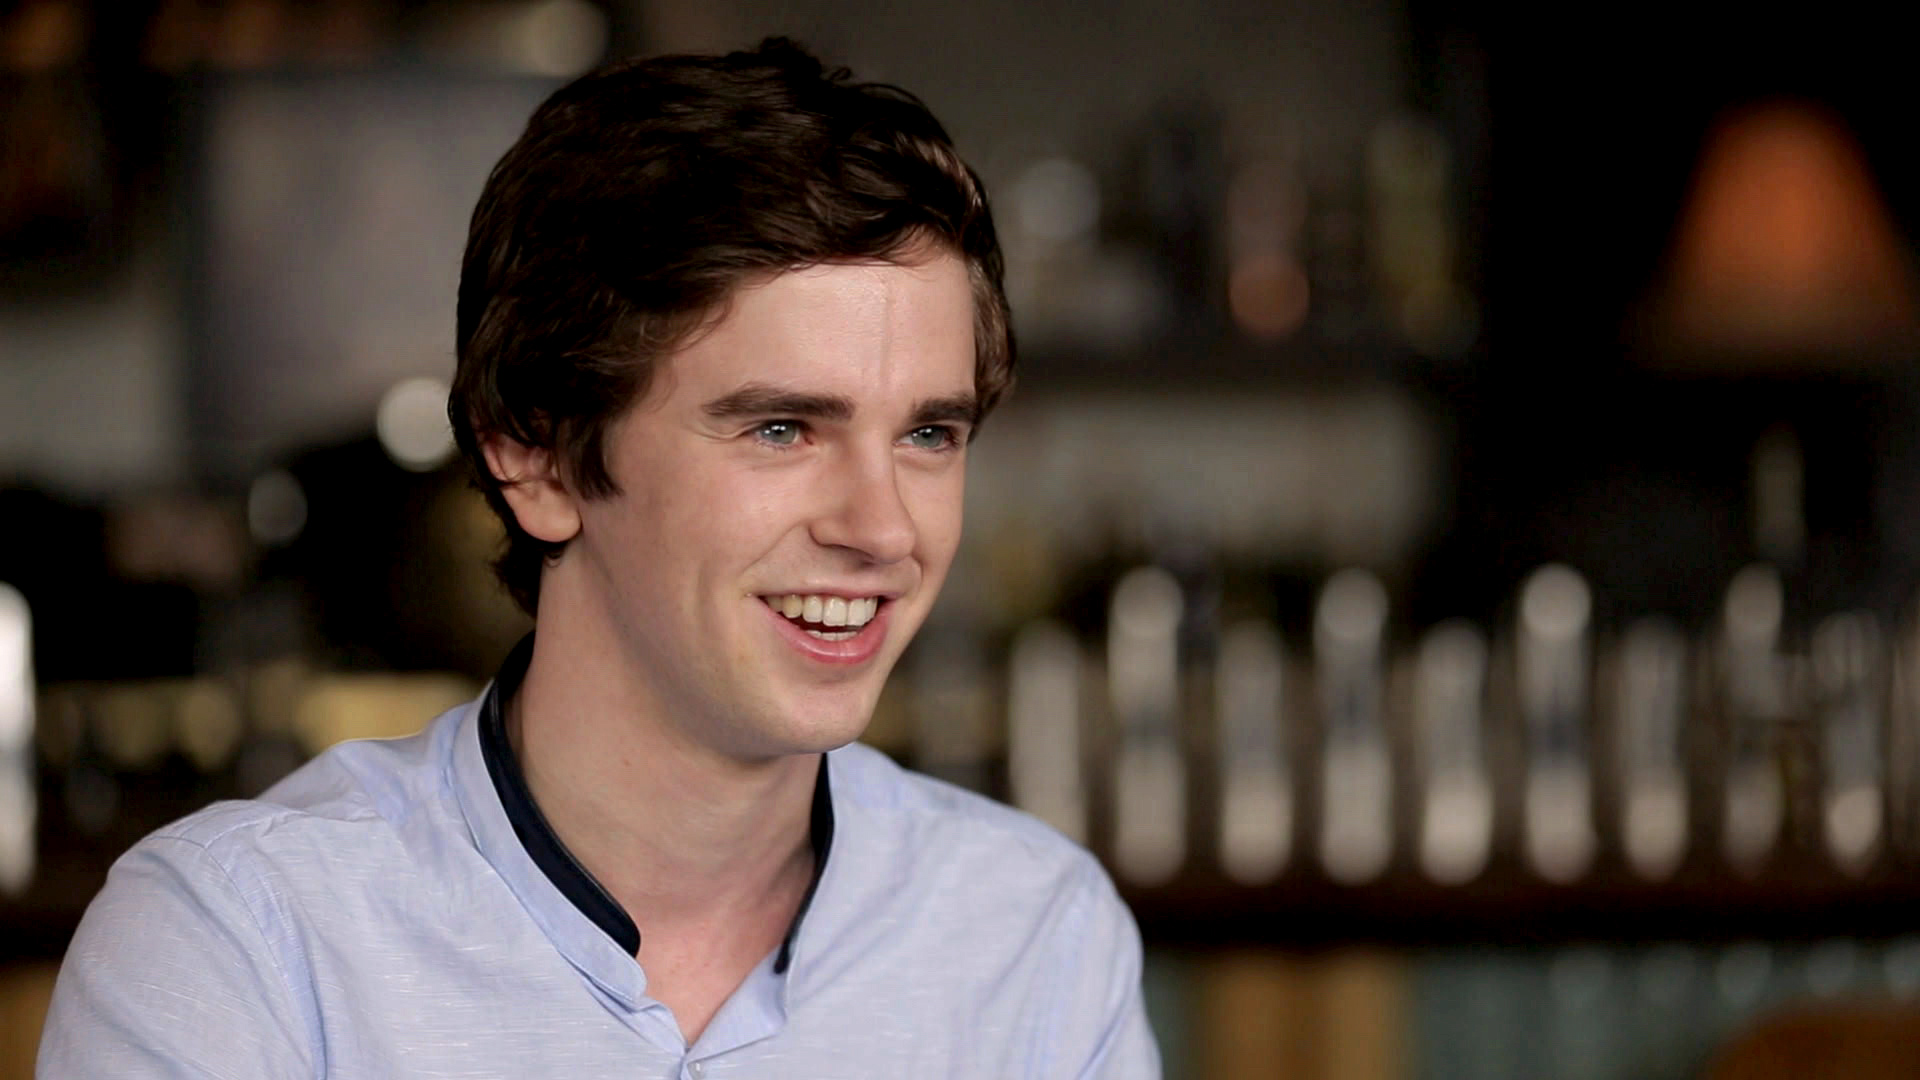 freddie highmore 2016freddie highmore 2016, freddie highmore 2017, freddie highmore tumblr, freddie highmore movies, freddie highmore and emma roberts, freddie highmore johnny depp, freddie highmore arthur and the minimoys, freddie highmore finding neverland, freddie highmore date, freddie highmore toast, freddie highmore wdw, freddie highmore filmleri, freddie highmore quotes, freddie highmore filmography, freddie highmore height, freddie highmore kiss scenes, freddie highmore 2008, freddie highmore spanish, freddie highmore skandar keynes, freddie highmore vk